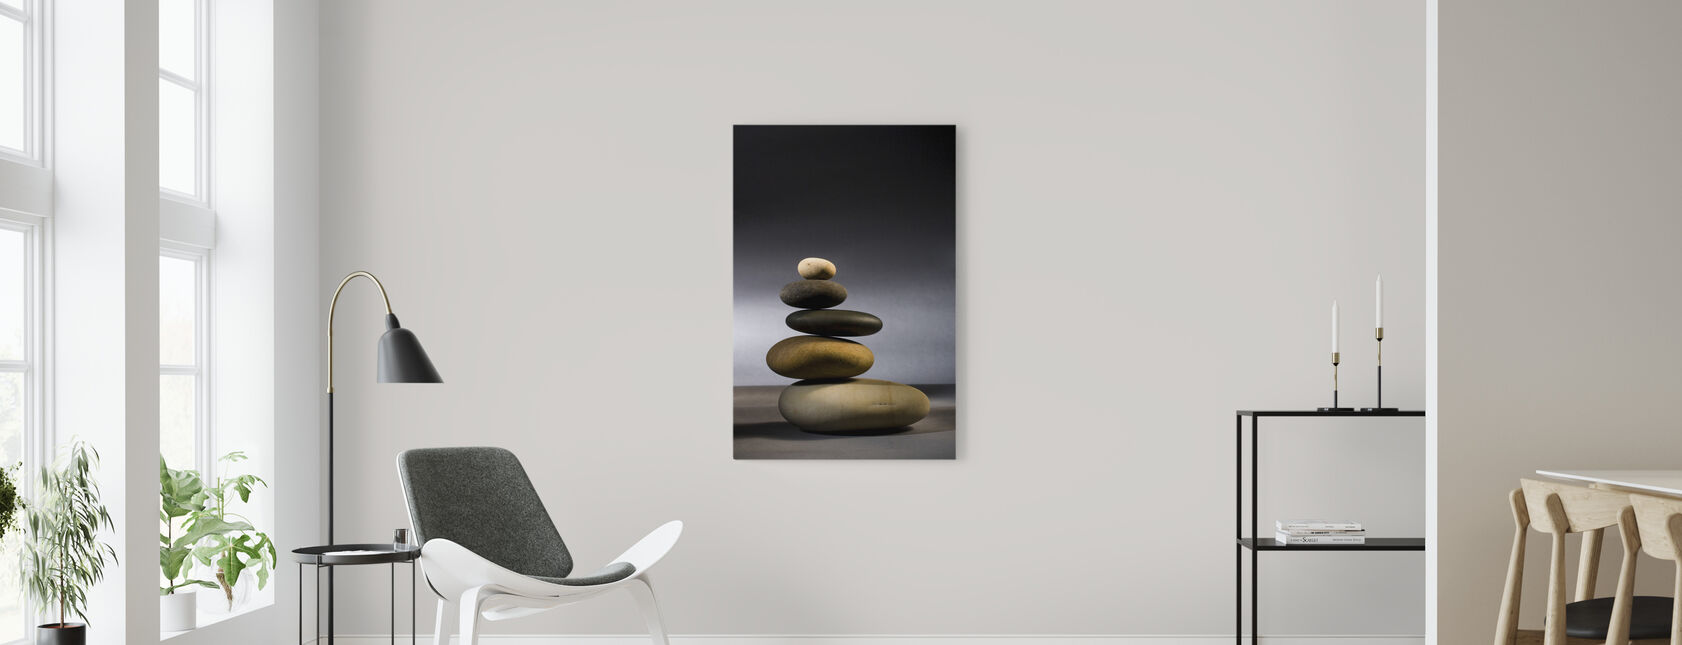 Stones in Zen Balance - Canvas print - Living Room